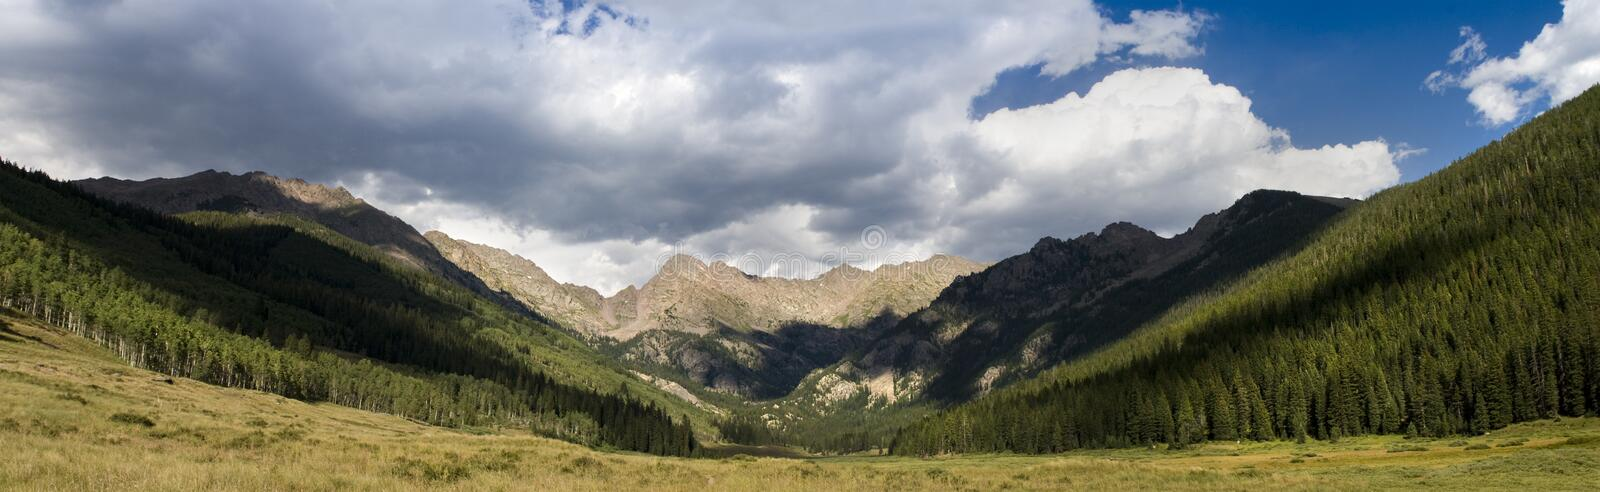 Gore Range Mountain View bij Piney Rivierboerderij Vail Colorado stock foto